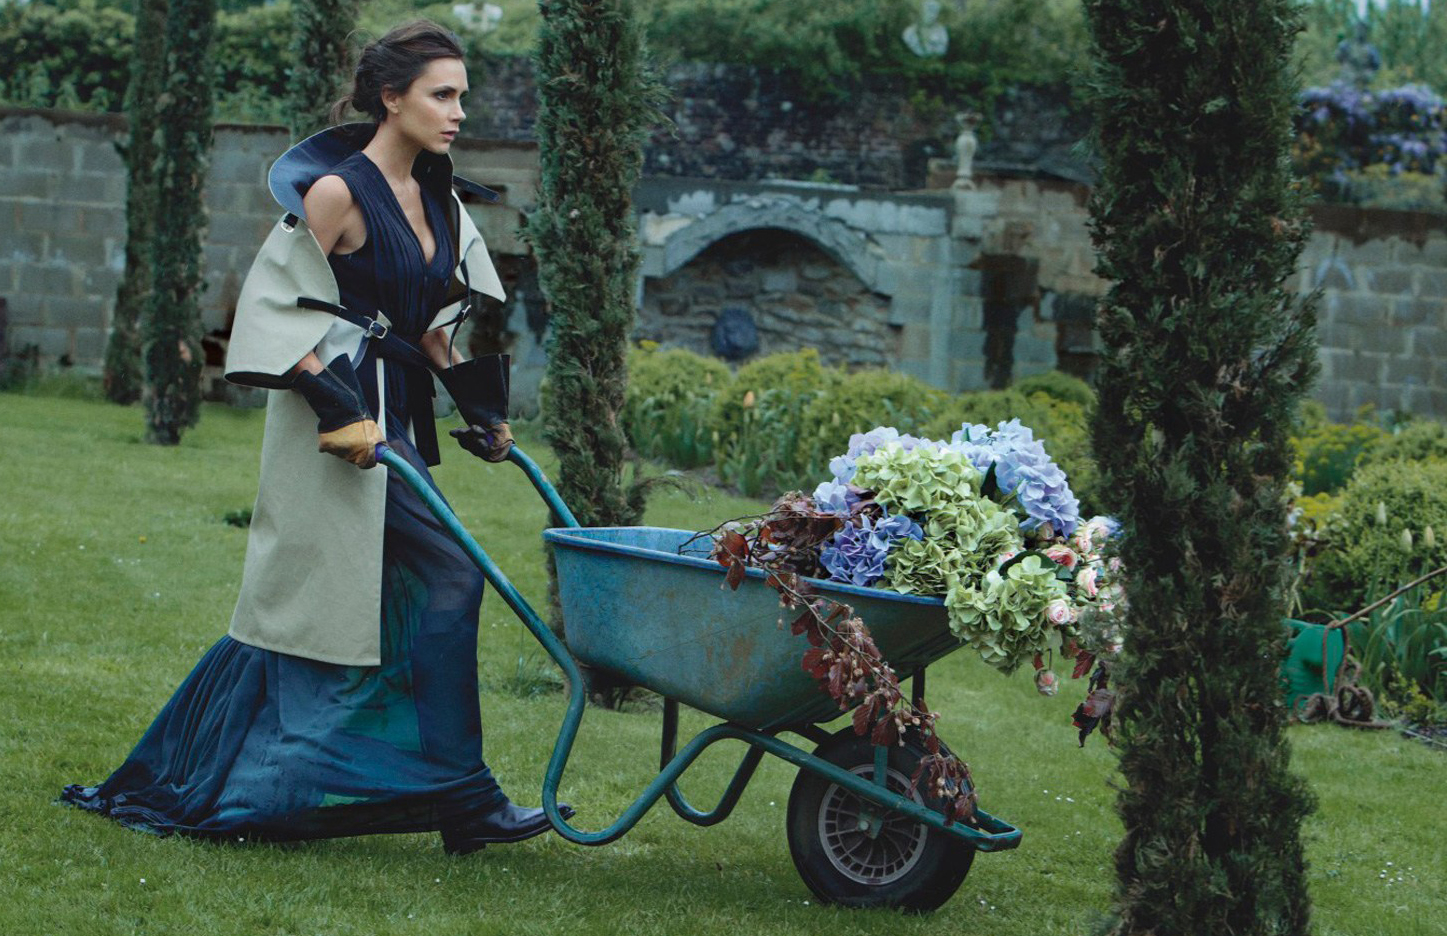 victoria-beckham-patrick-demarchelier-vogue-aug14-p124_b